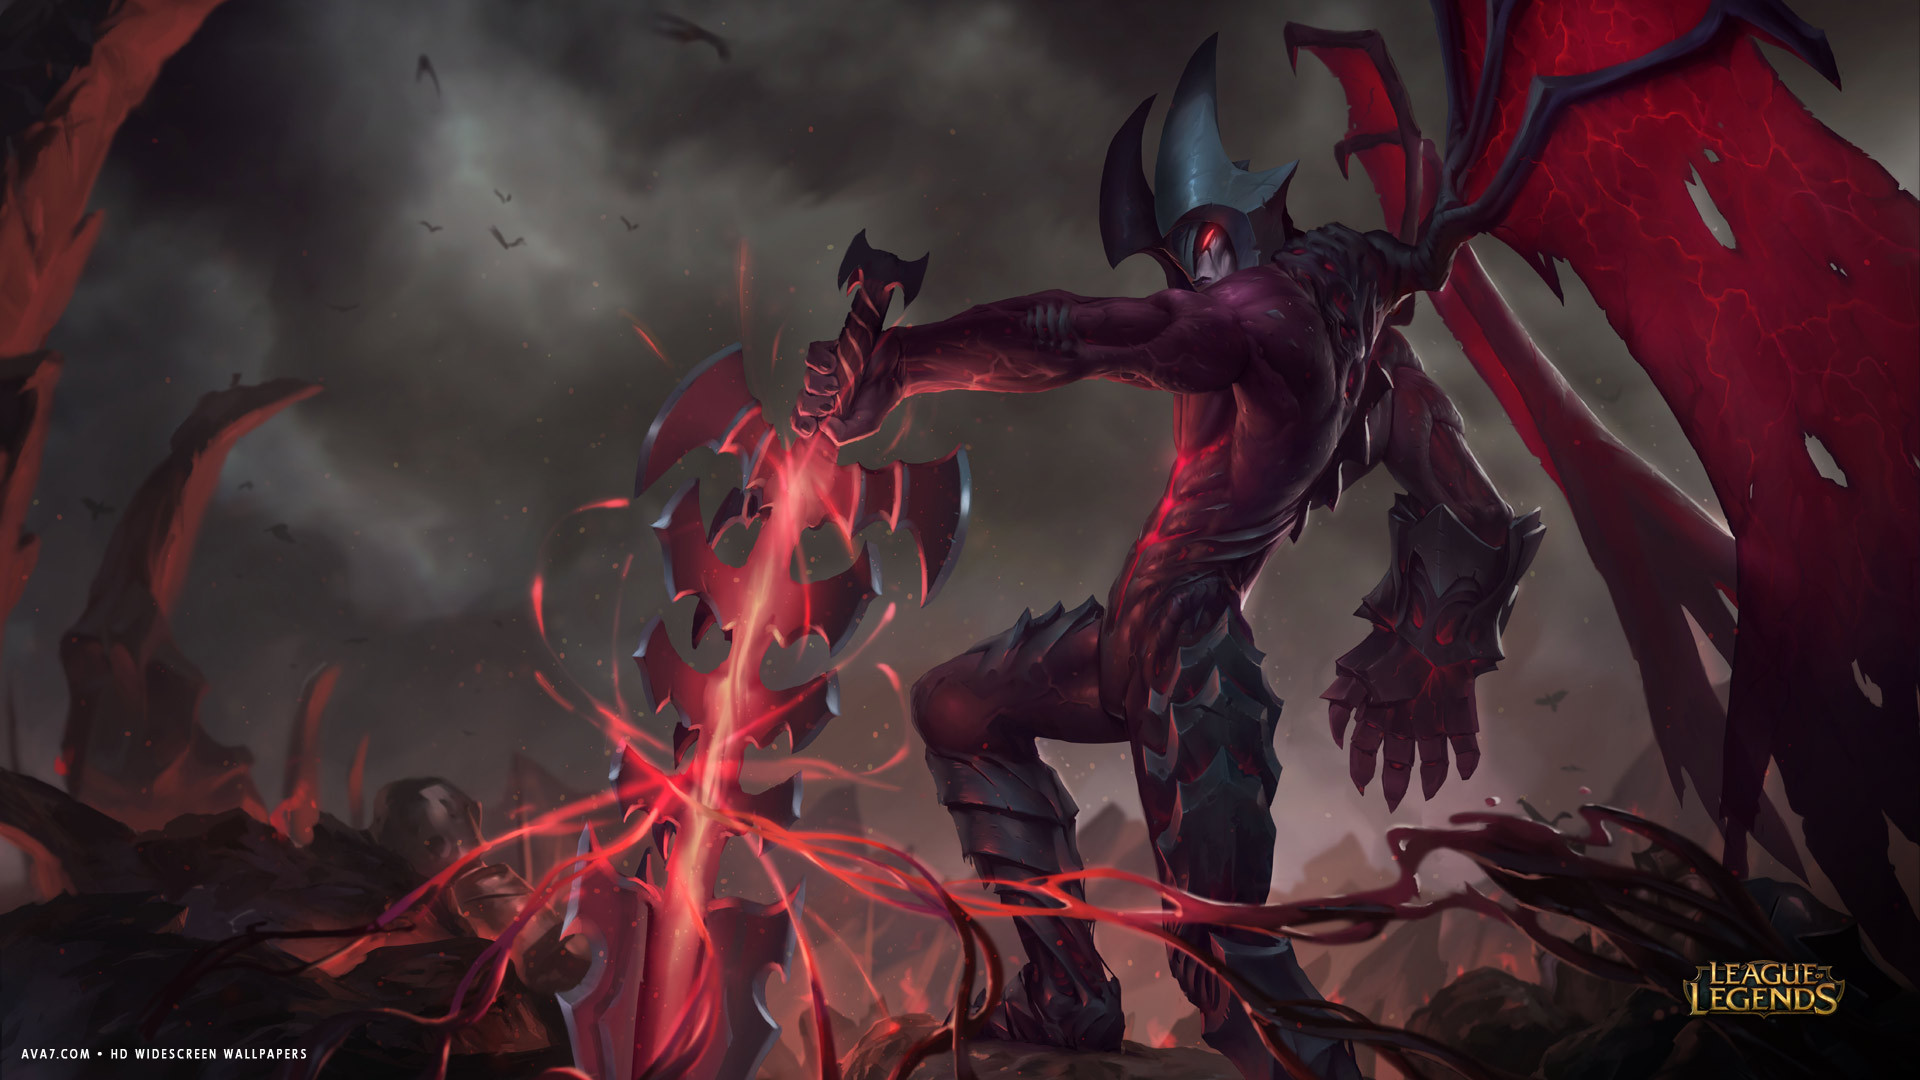 league of legends game lol aatrox demon sword hd widescreen wallpaper